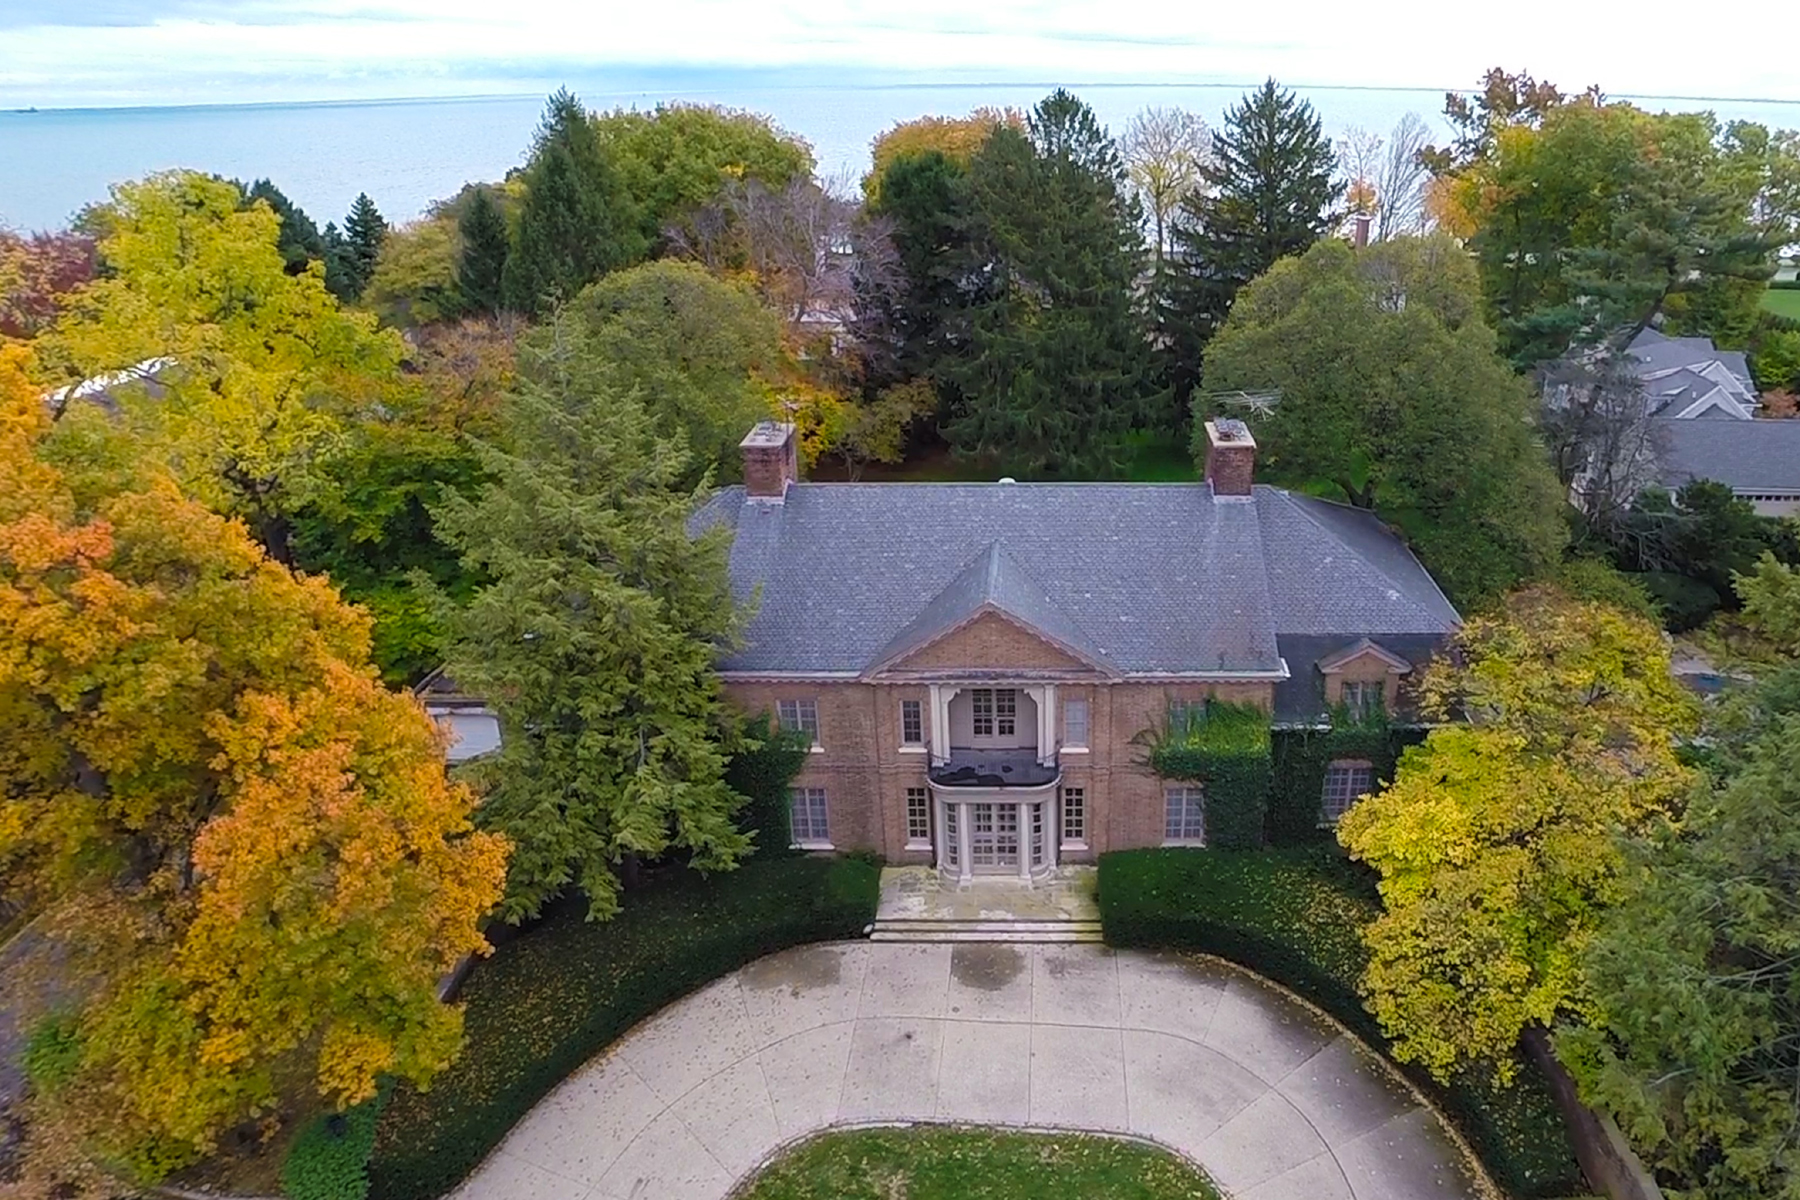 独户住宅 为 销售 在 Grosse Pointe Farms 30-A Preston Grosse Pointe Farms, 密歇根州, 48236 美国